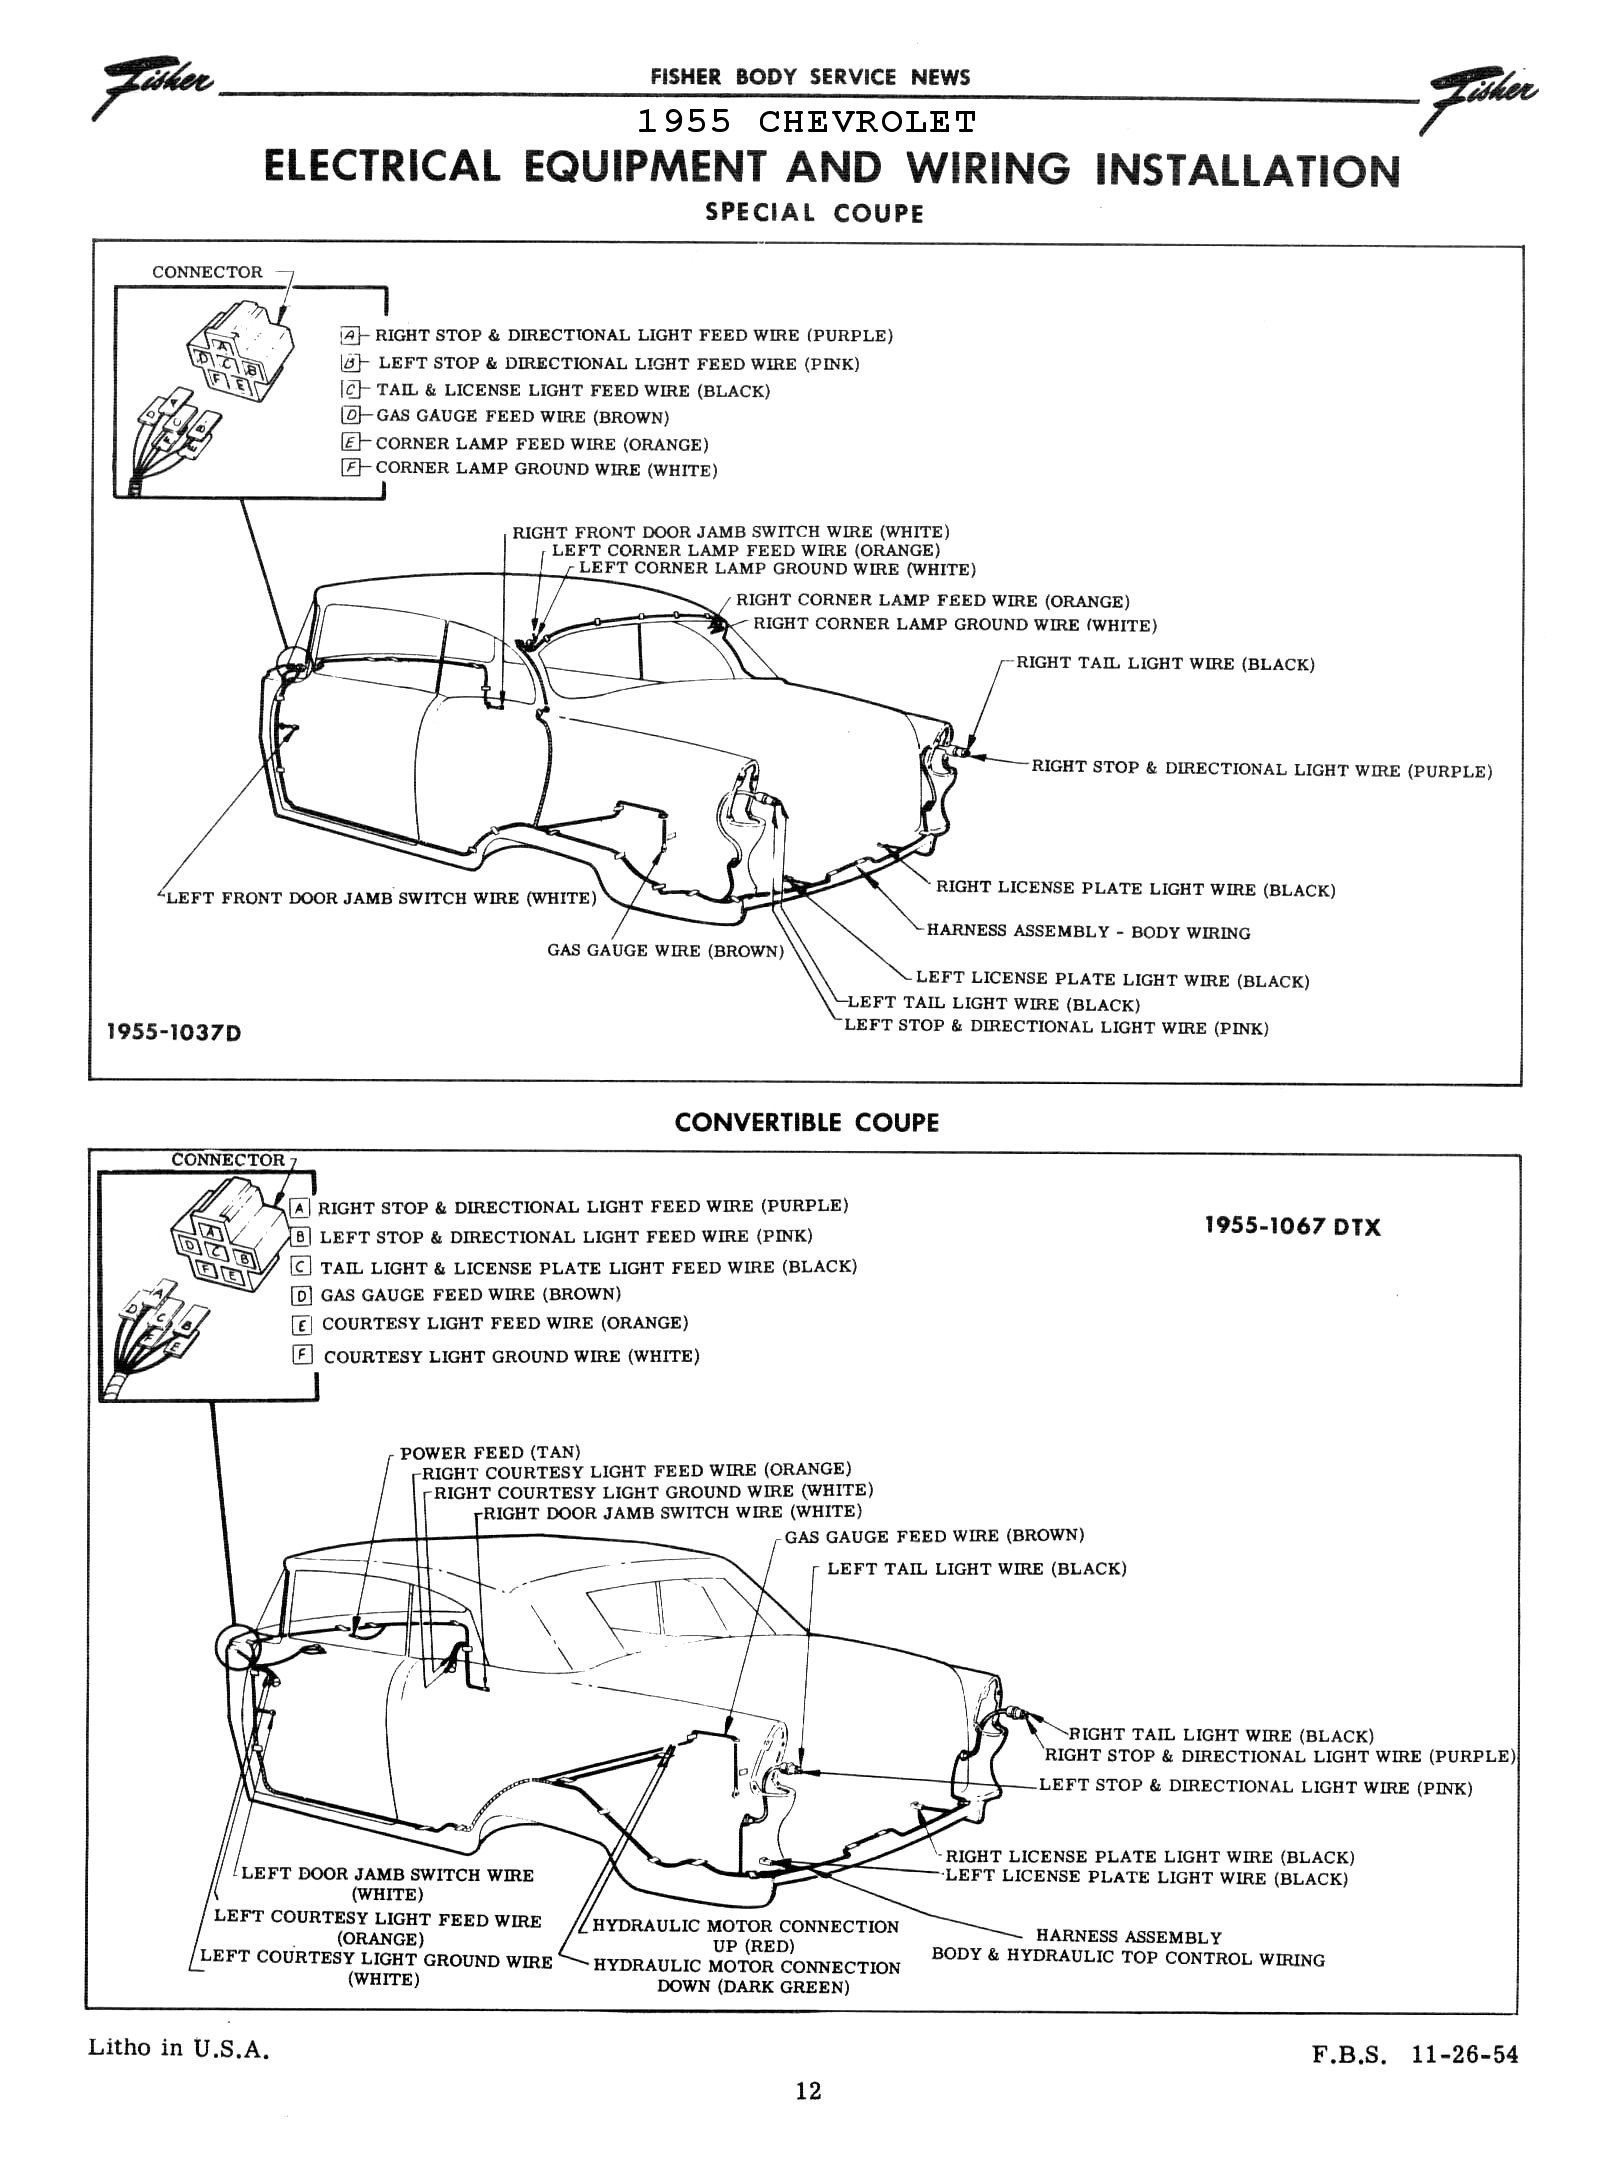 55fsn140612 chevy wiring diagrams wiring diagram 53 chevy truck at reclaimingppi.co